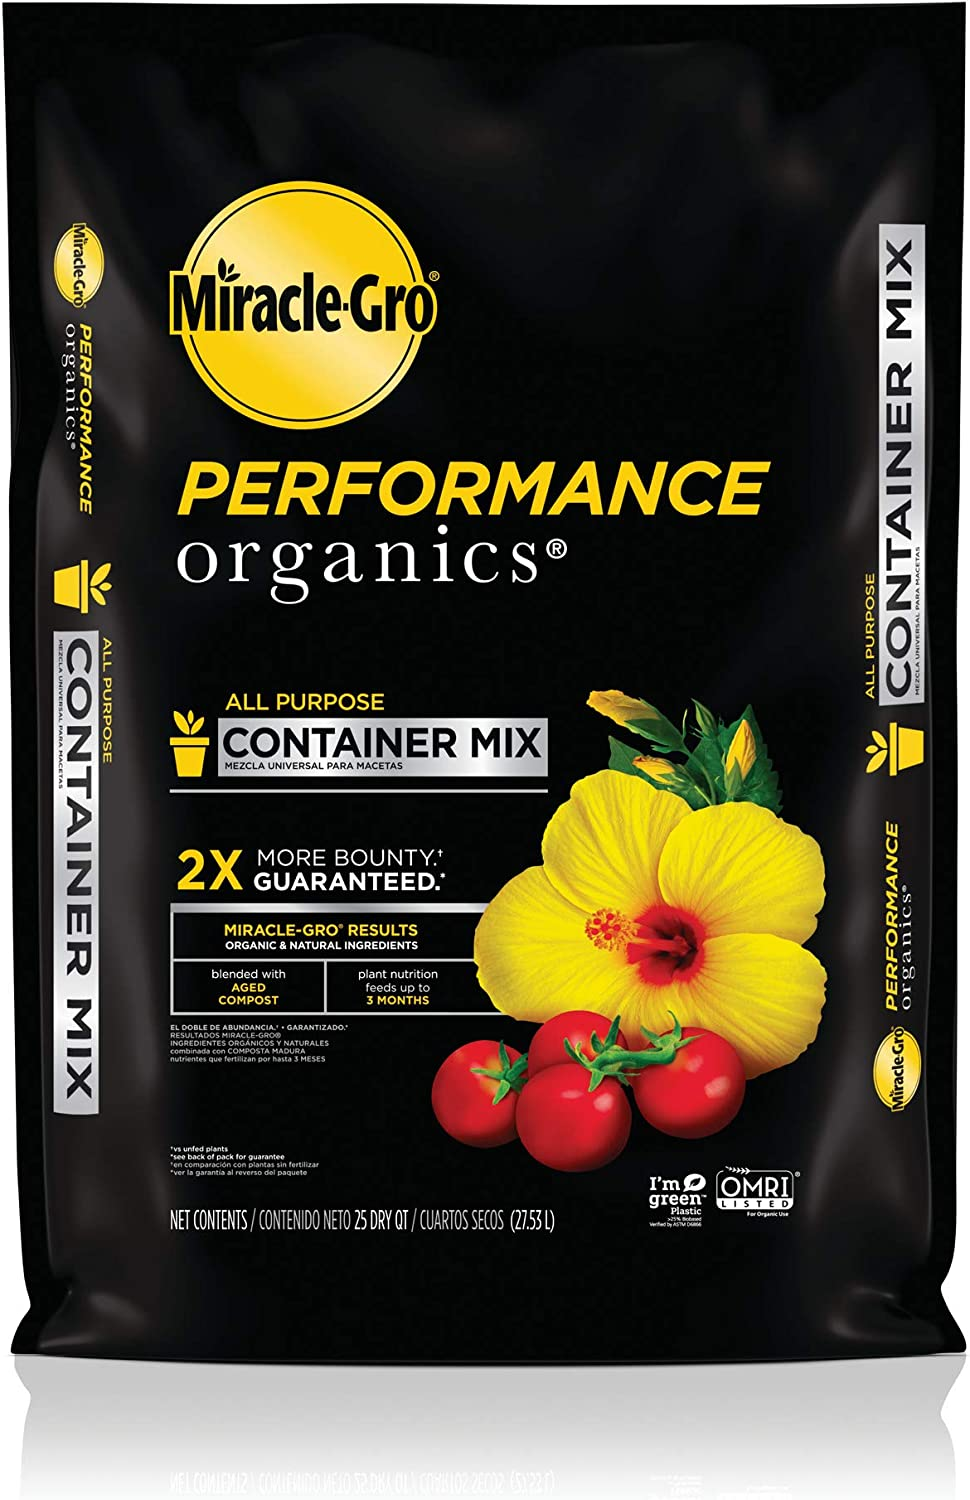 Miracle-Gro Performance Organics All Purpose Container Mix, 25 qt. - Organic, All Natural Plant Soil - Feed for up to 3 Months - All-Purpose Formula for Vegetables, Flowers and Herbs